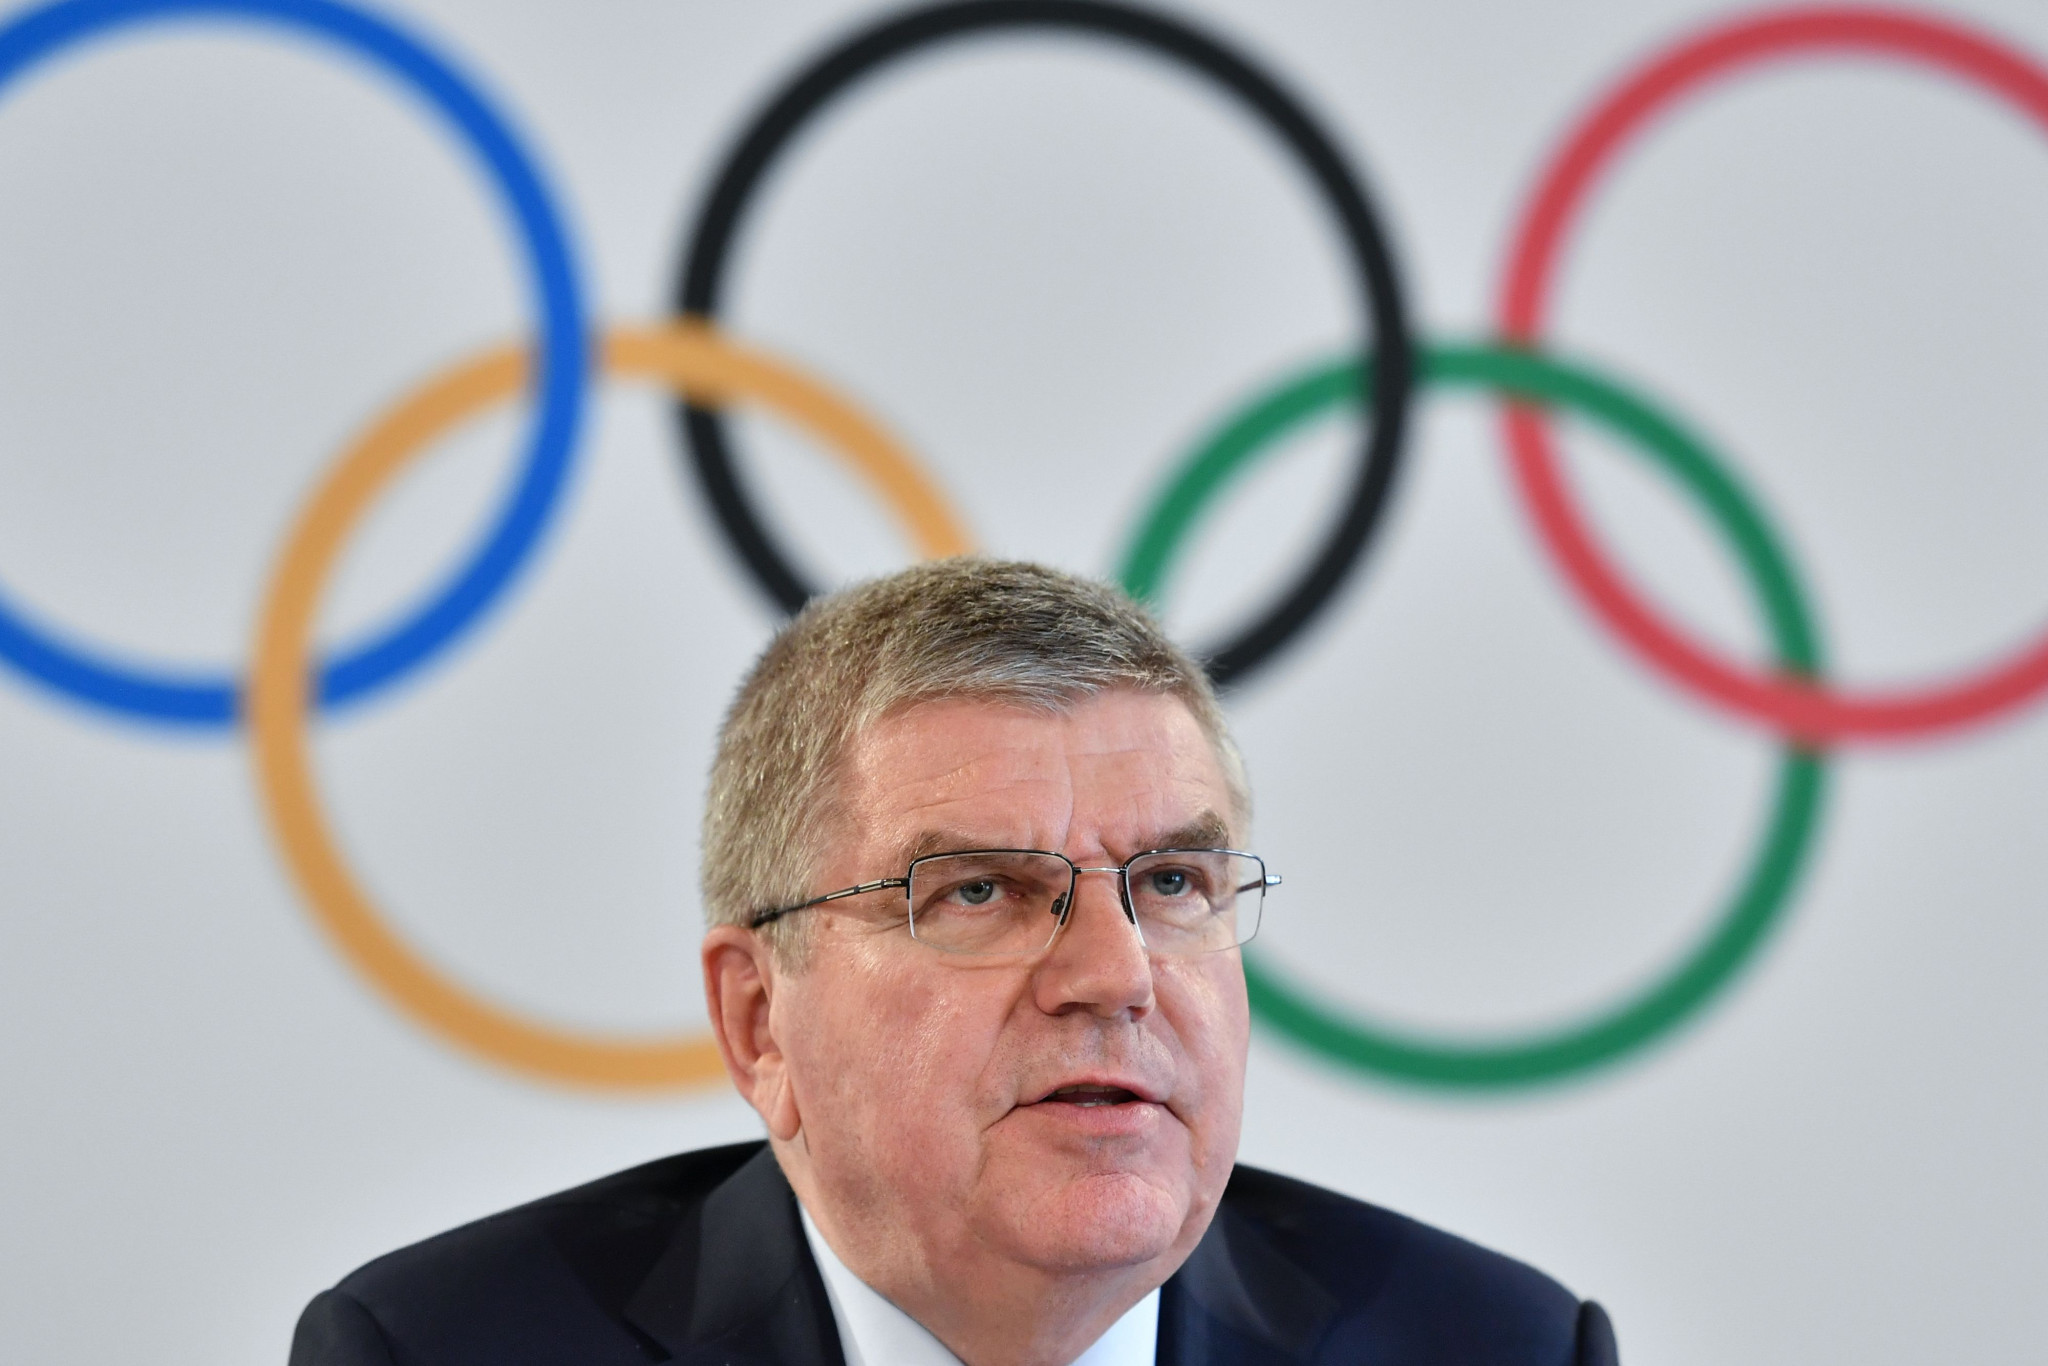 Thomas Bach conceded the IOC were considering a complete cancellation of the Games owing to security fears in the region ©Getty Images